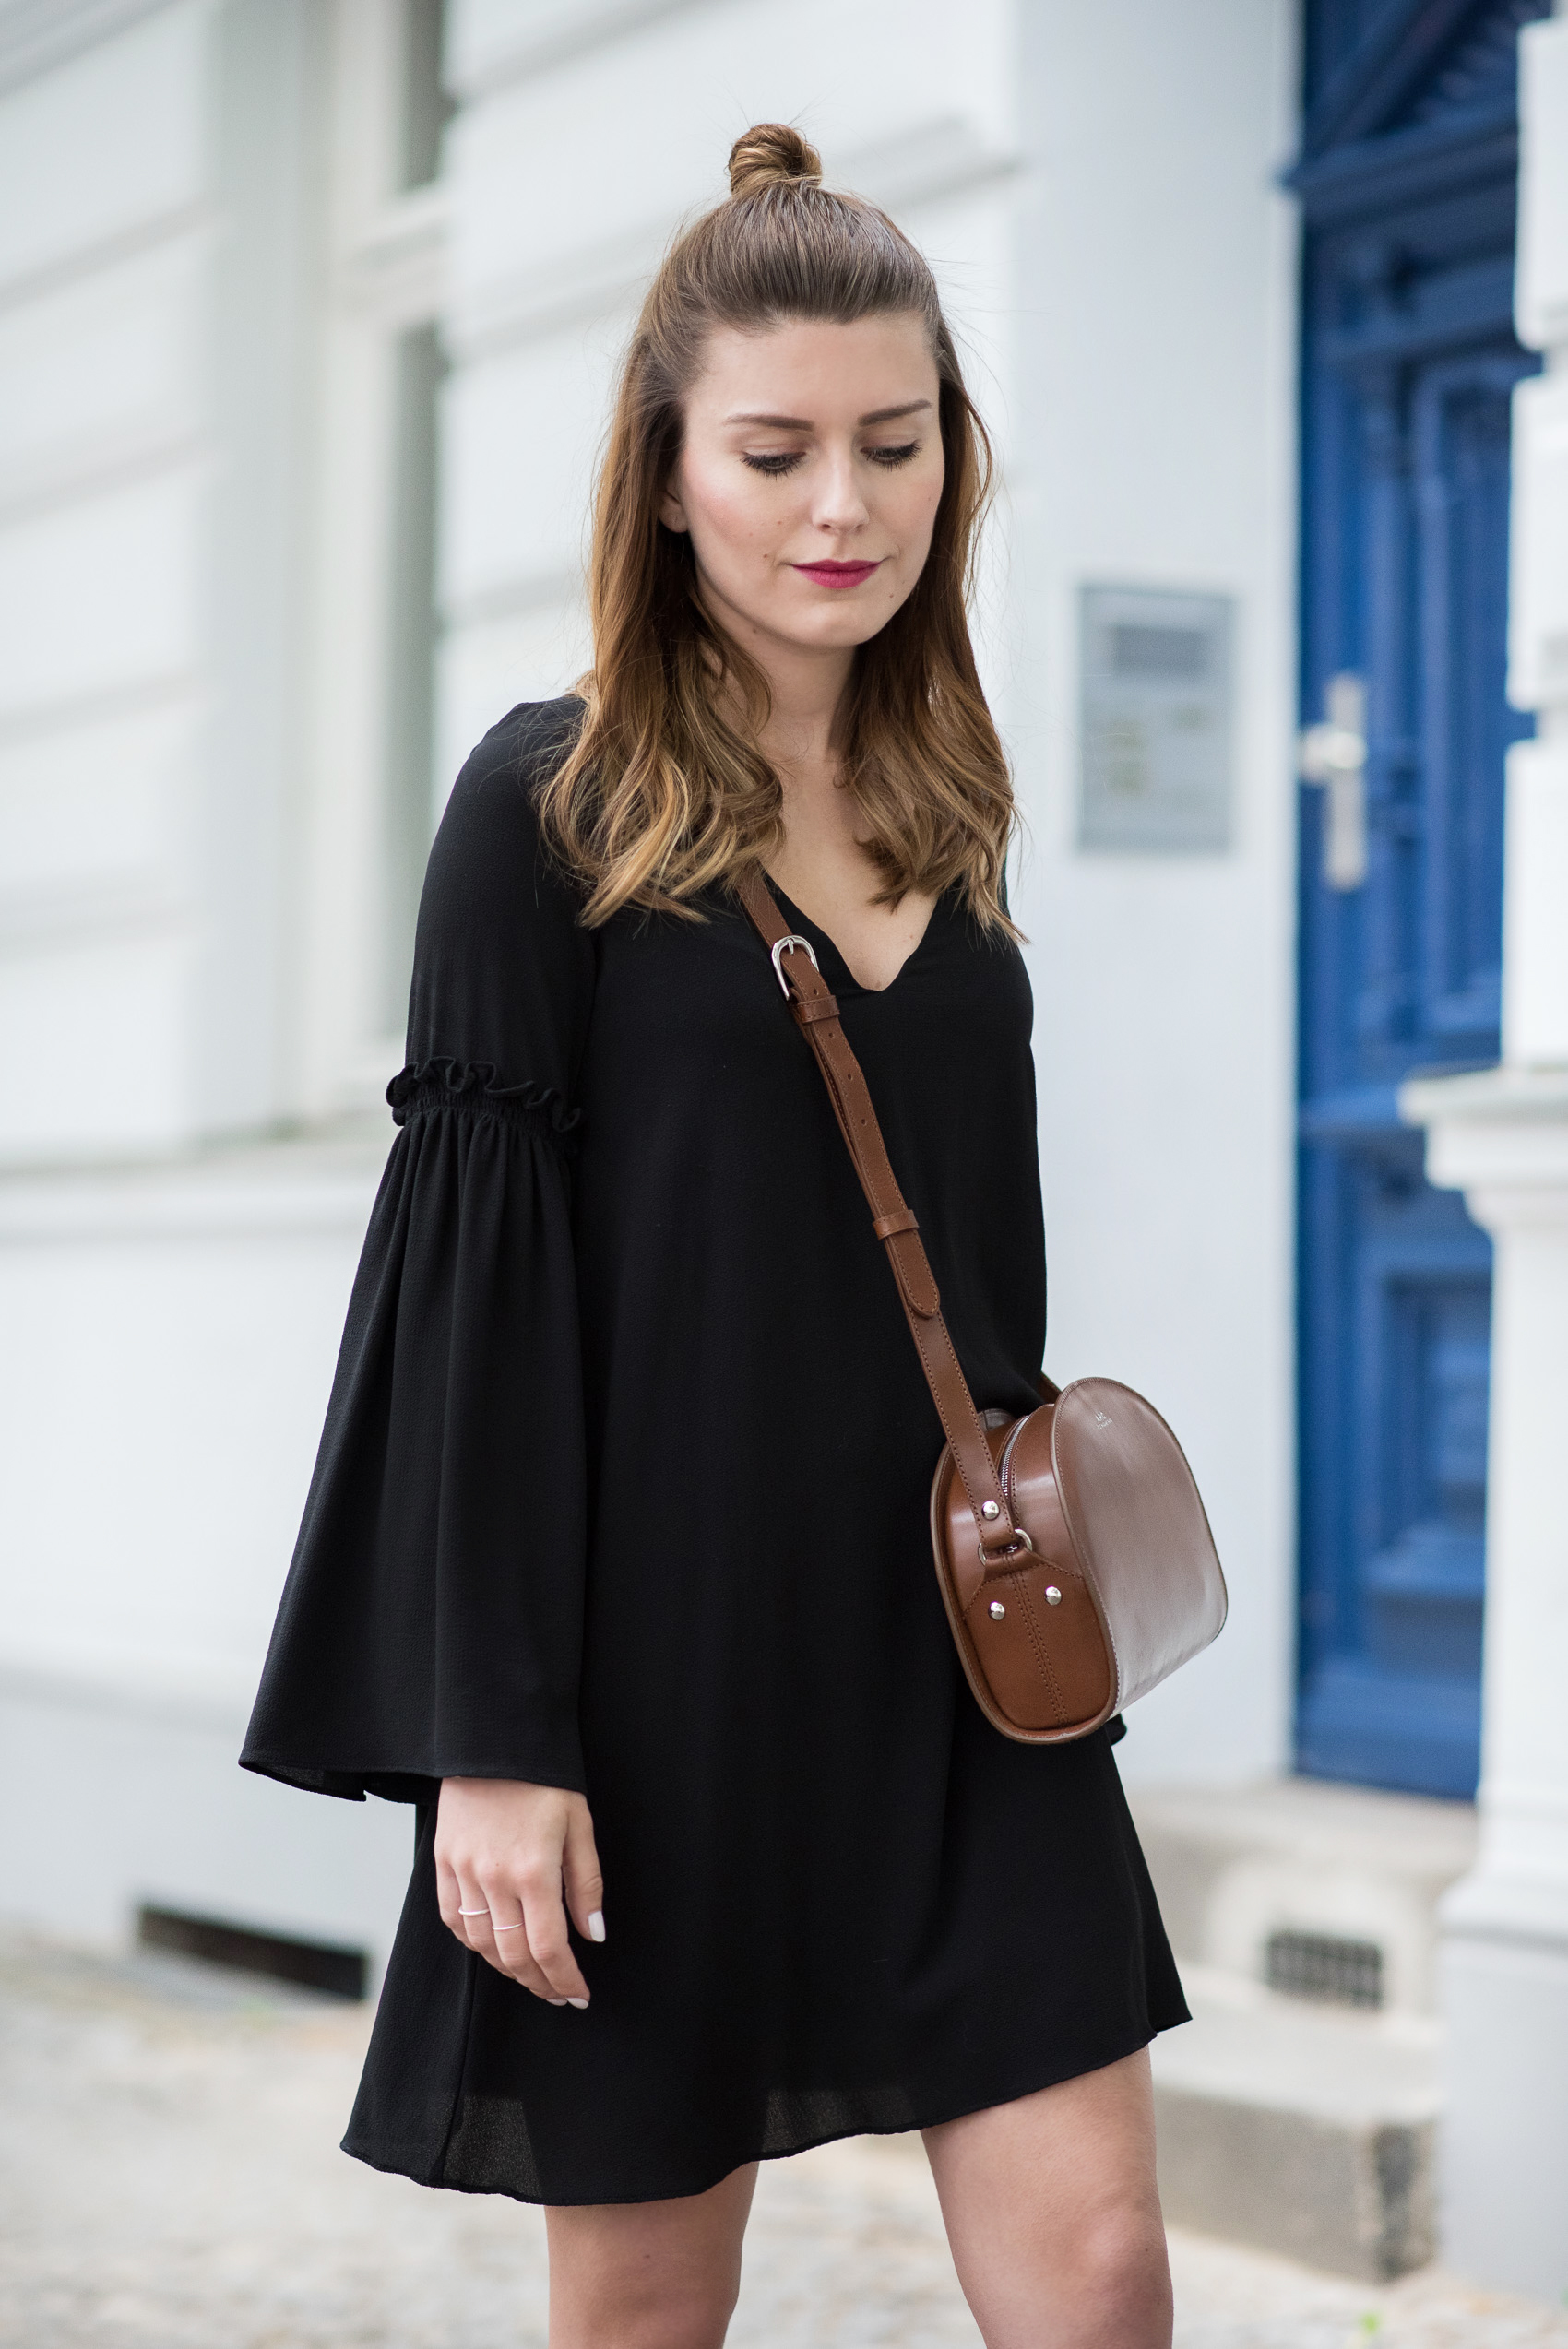 Bell_Sleeves_Boho_Dress_Outfit_2